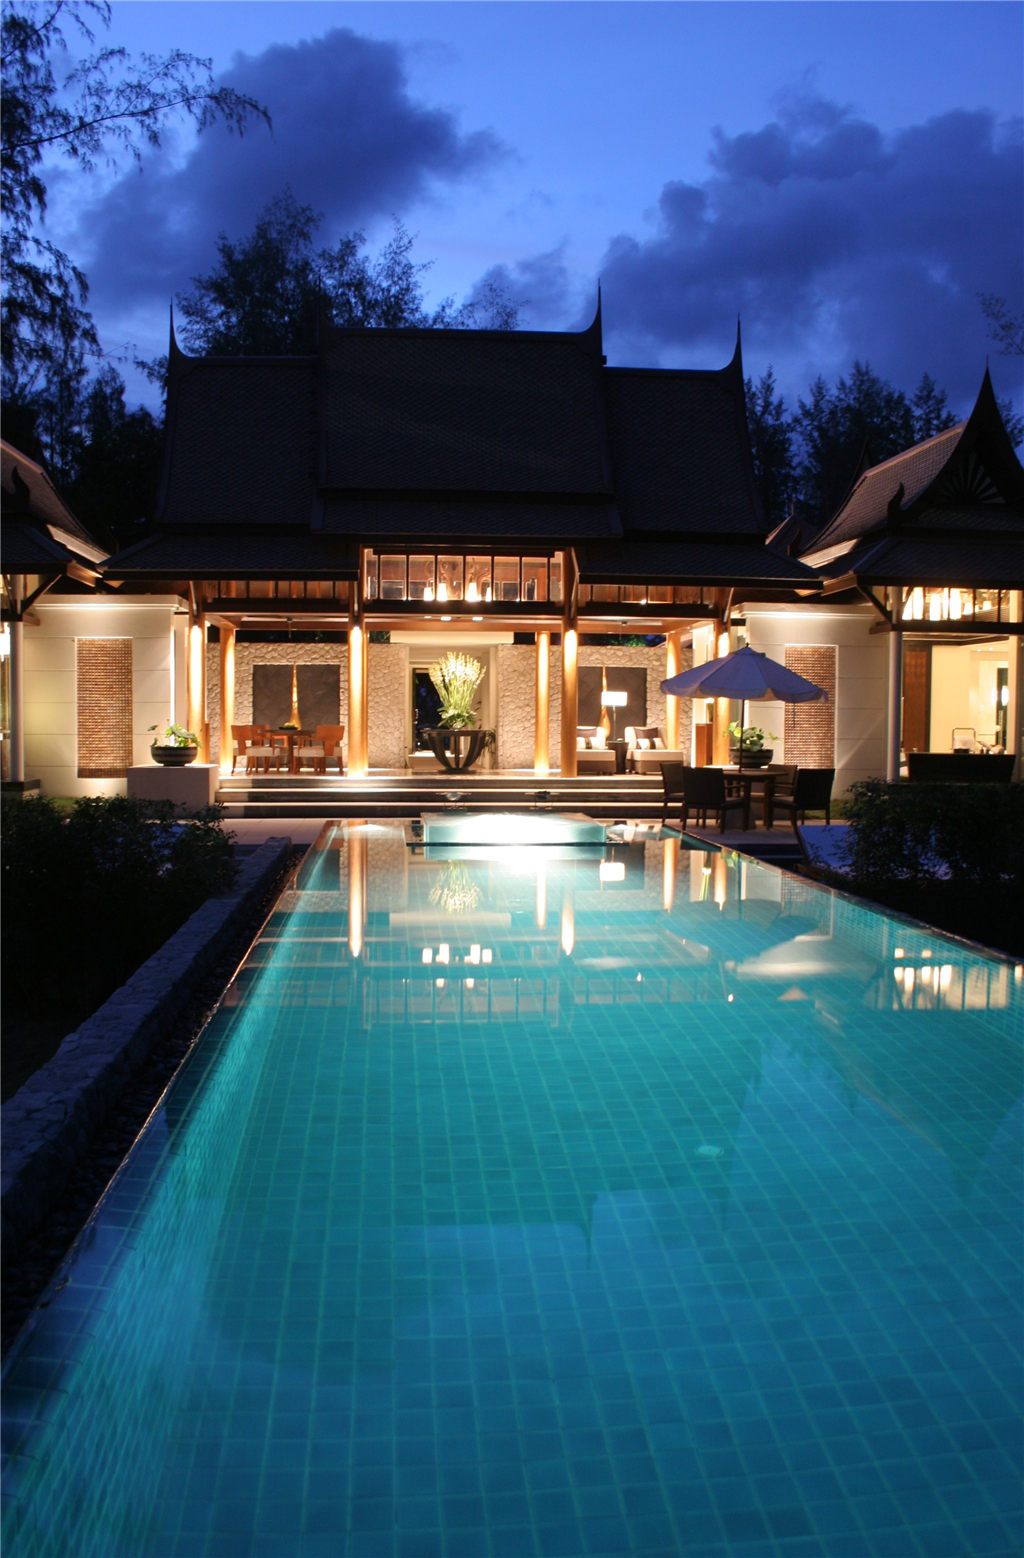 doublepool villa swimming pool.jpg